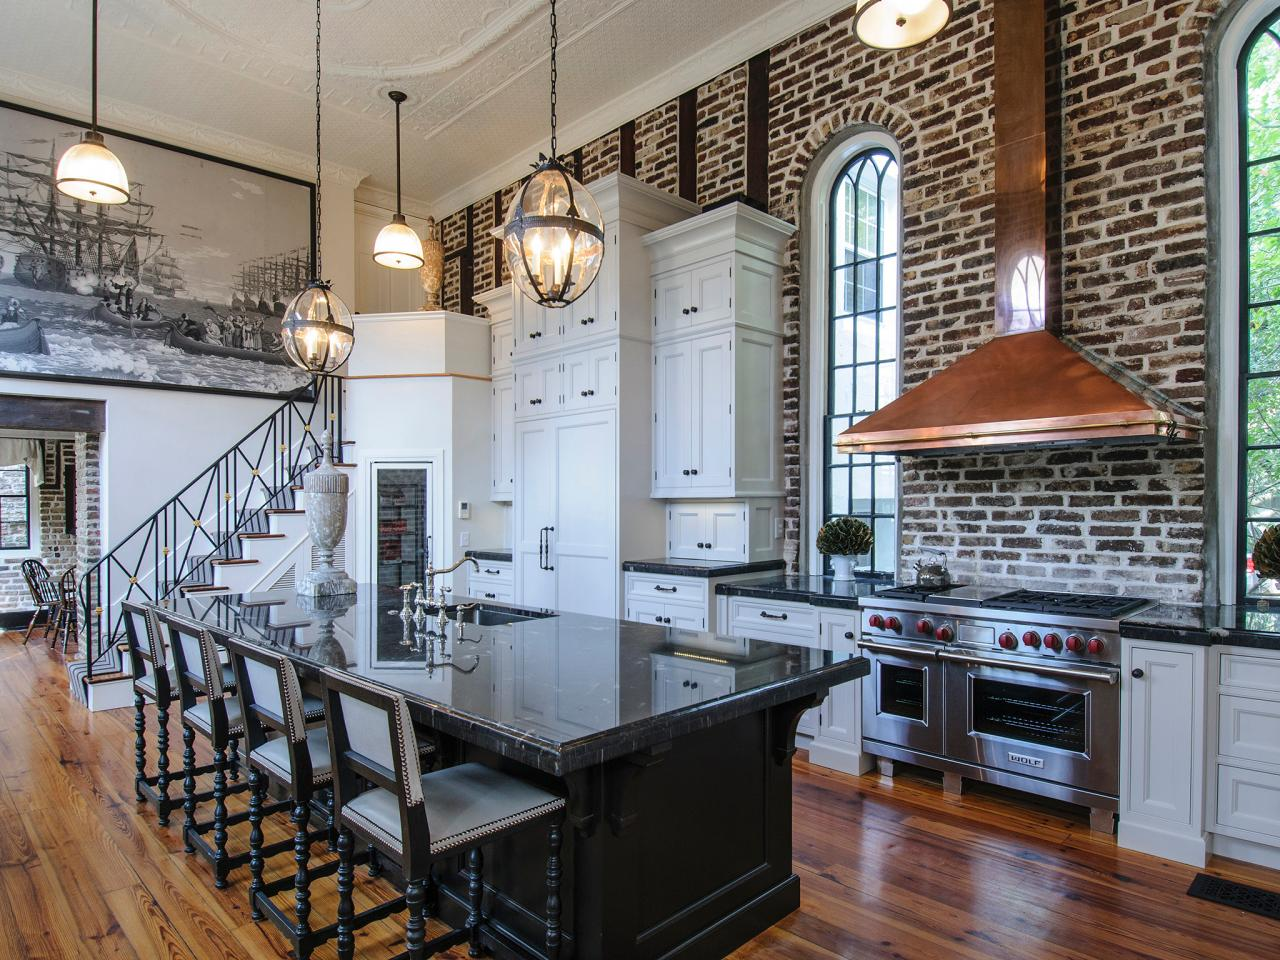 2017 - How to design your kitchen layout ...